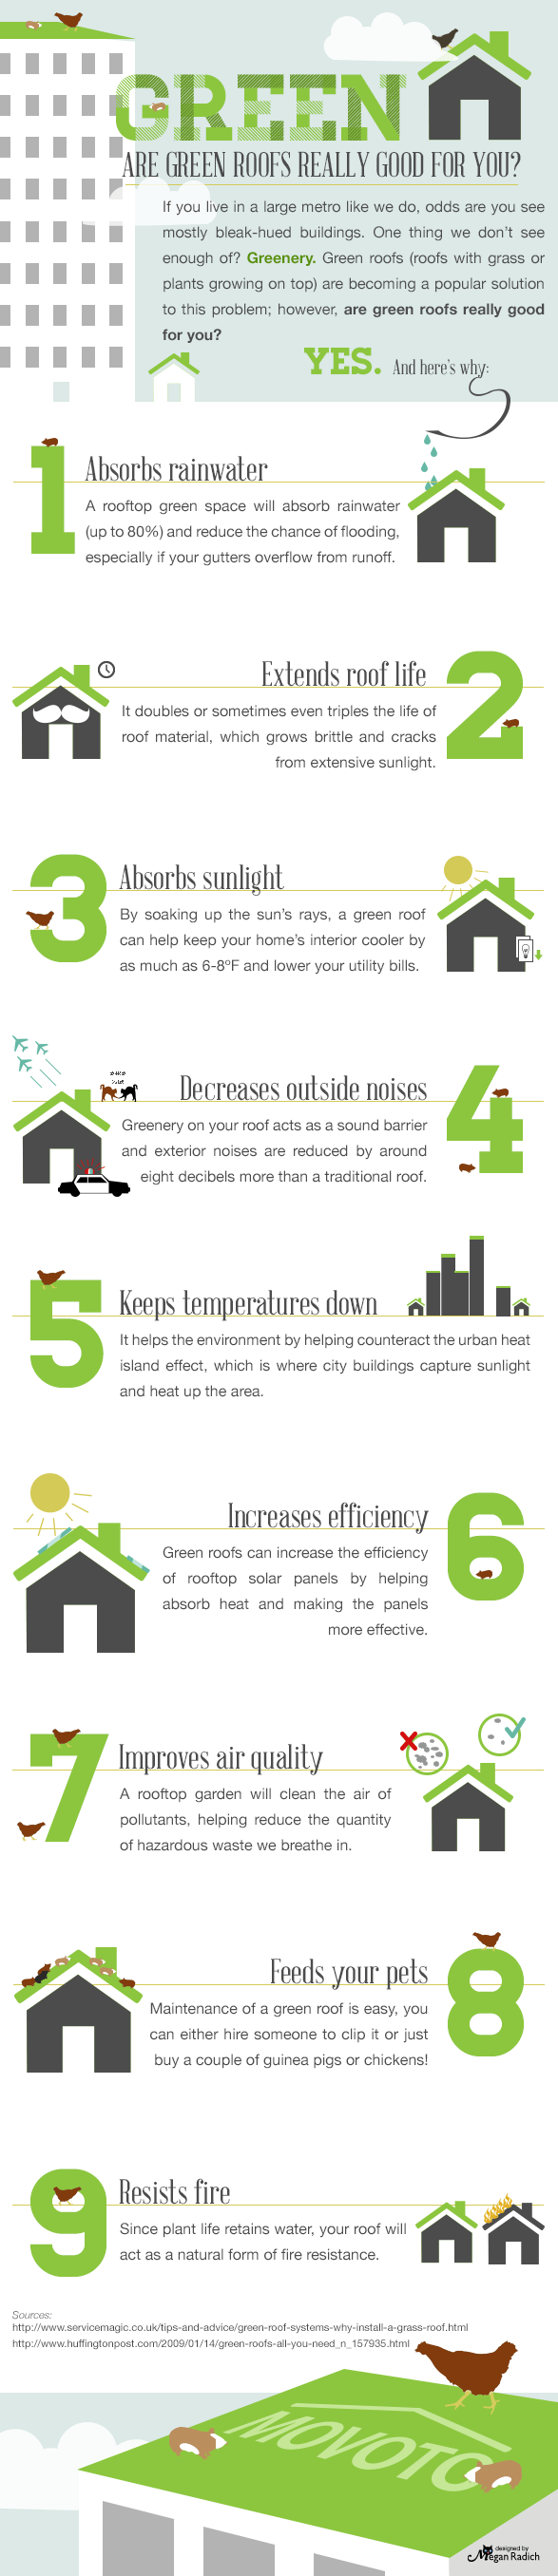 Are Green Roofs Really Good For You Infographic Green Roof